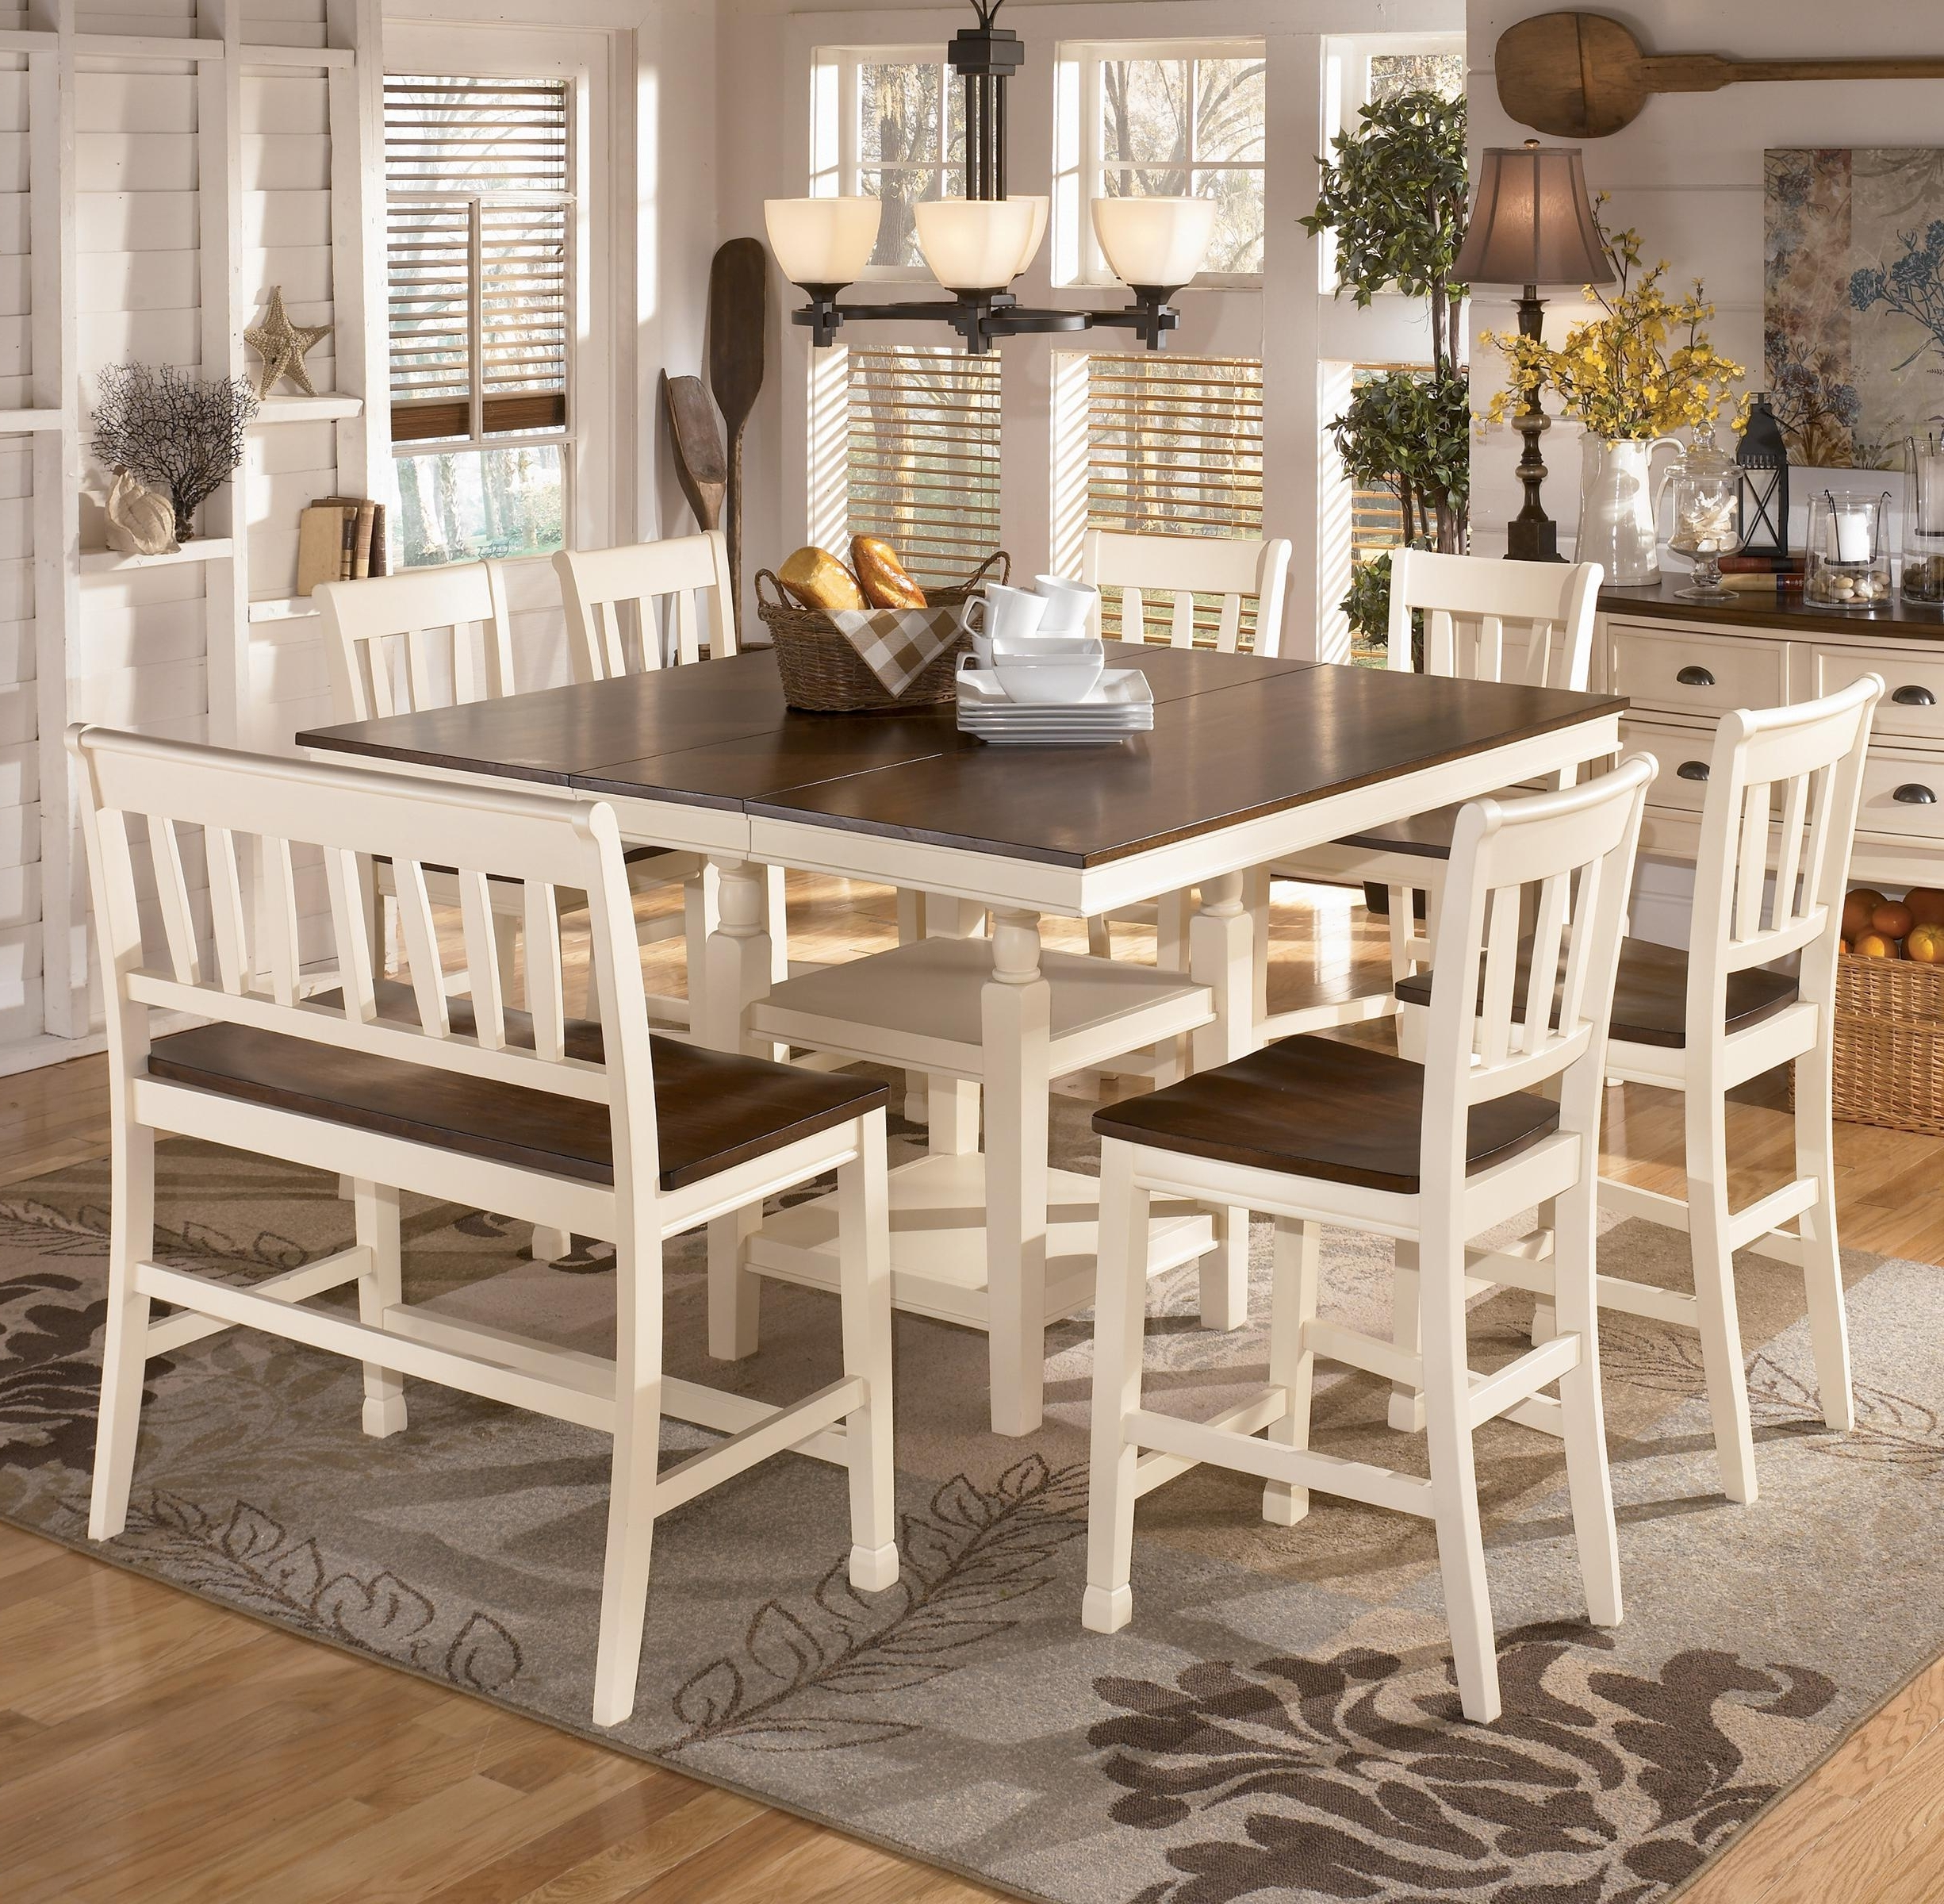 Widely Used Signature Designashley Whitesburg 8 Piece Square Counter For Jaxon 5 Piece Extension Round Dining Sets With Wood Chairs (View 20 of 25)